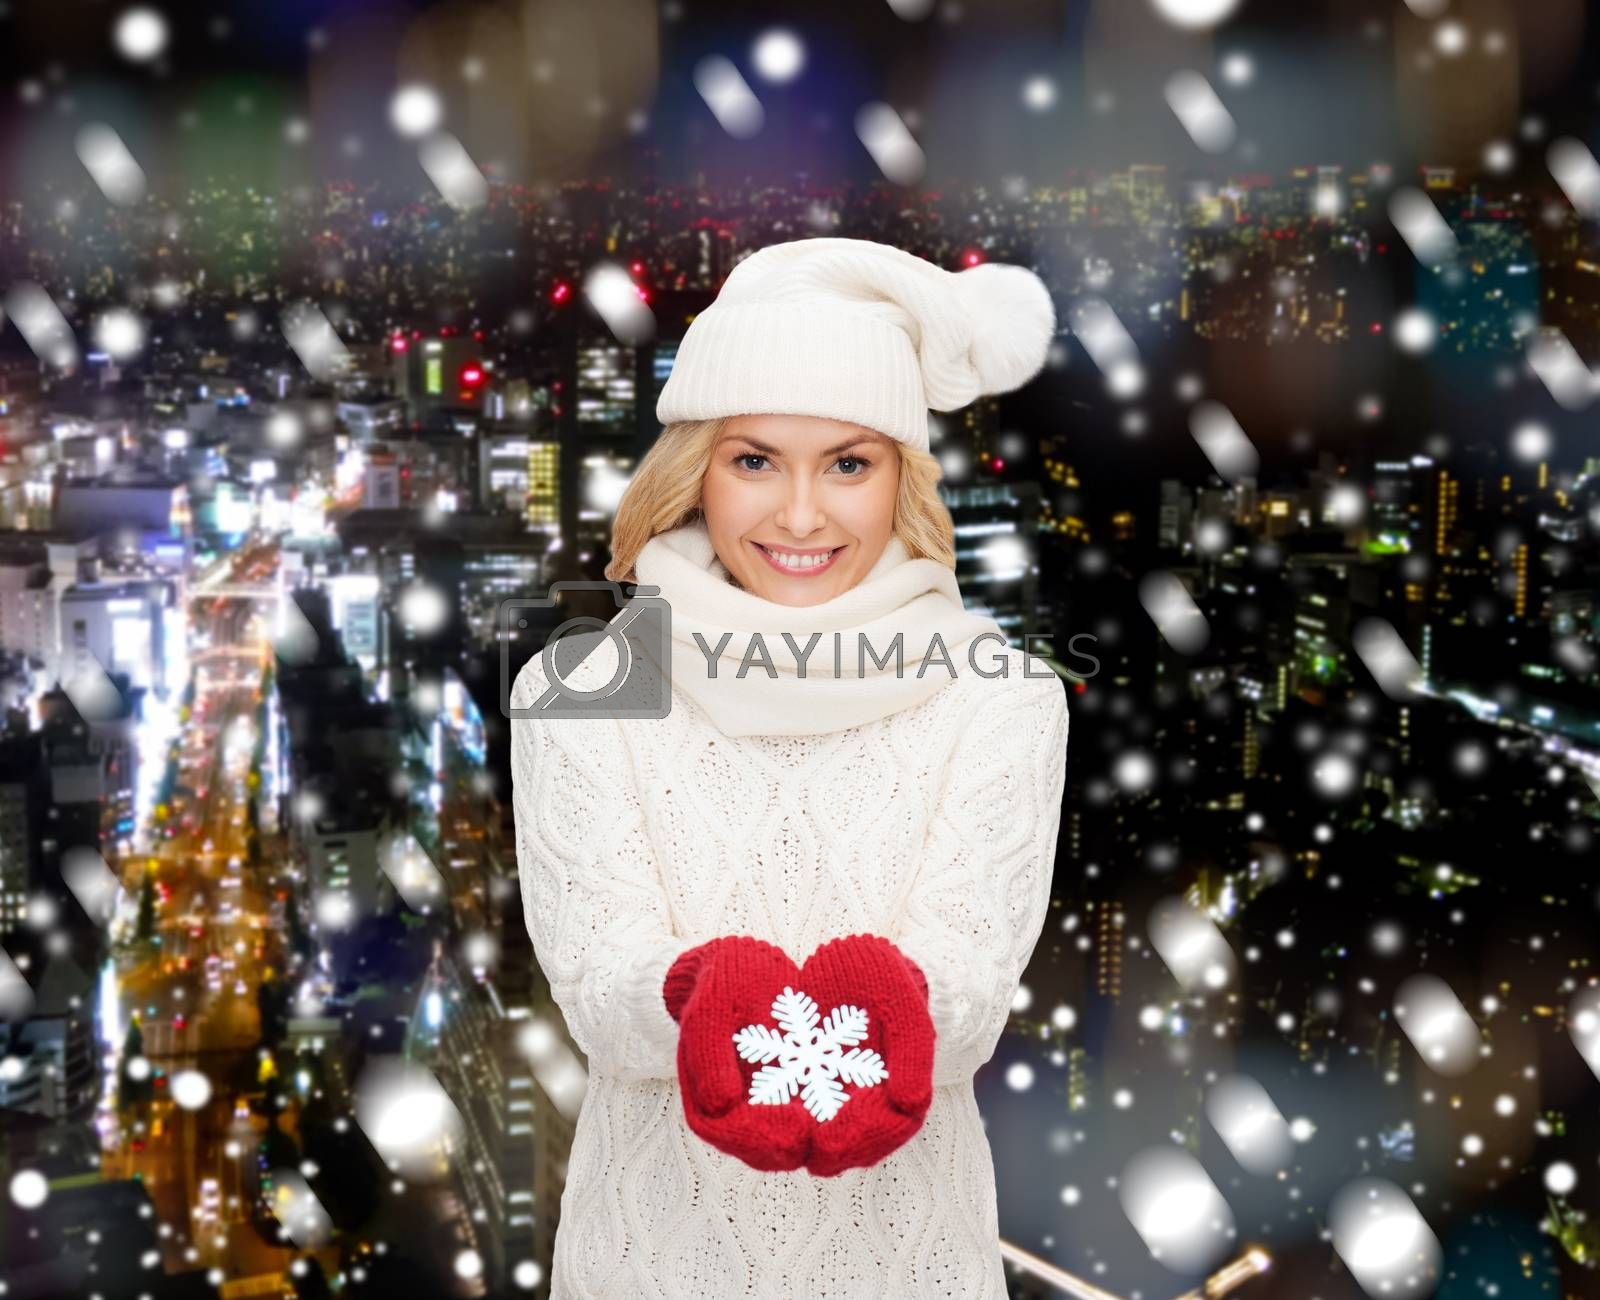 happiness, winter holidays, christmas and people concept - smiling young woman in hat, scarf and mittens holding snowflake decoration over snowy night city background